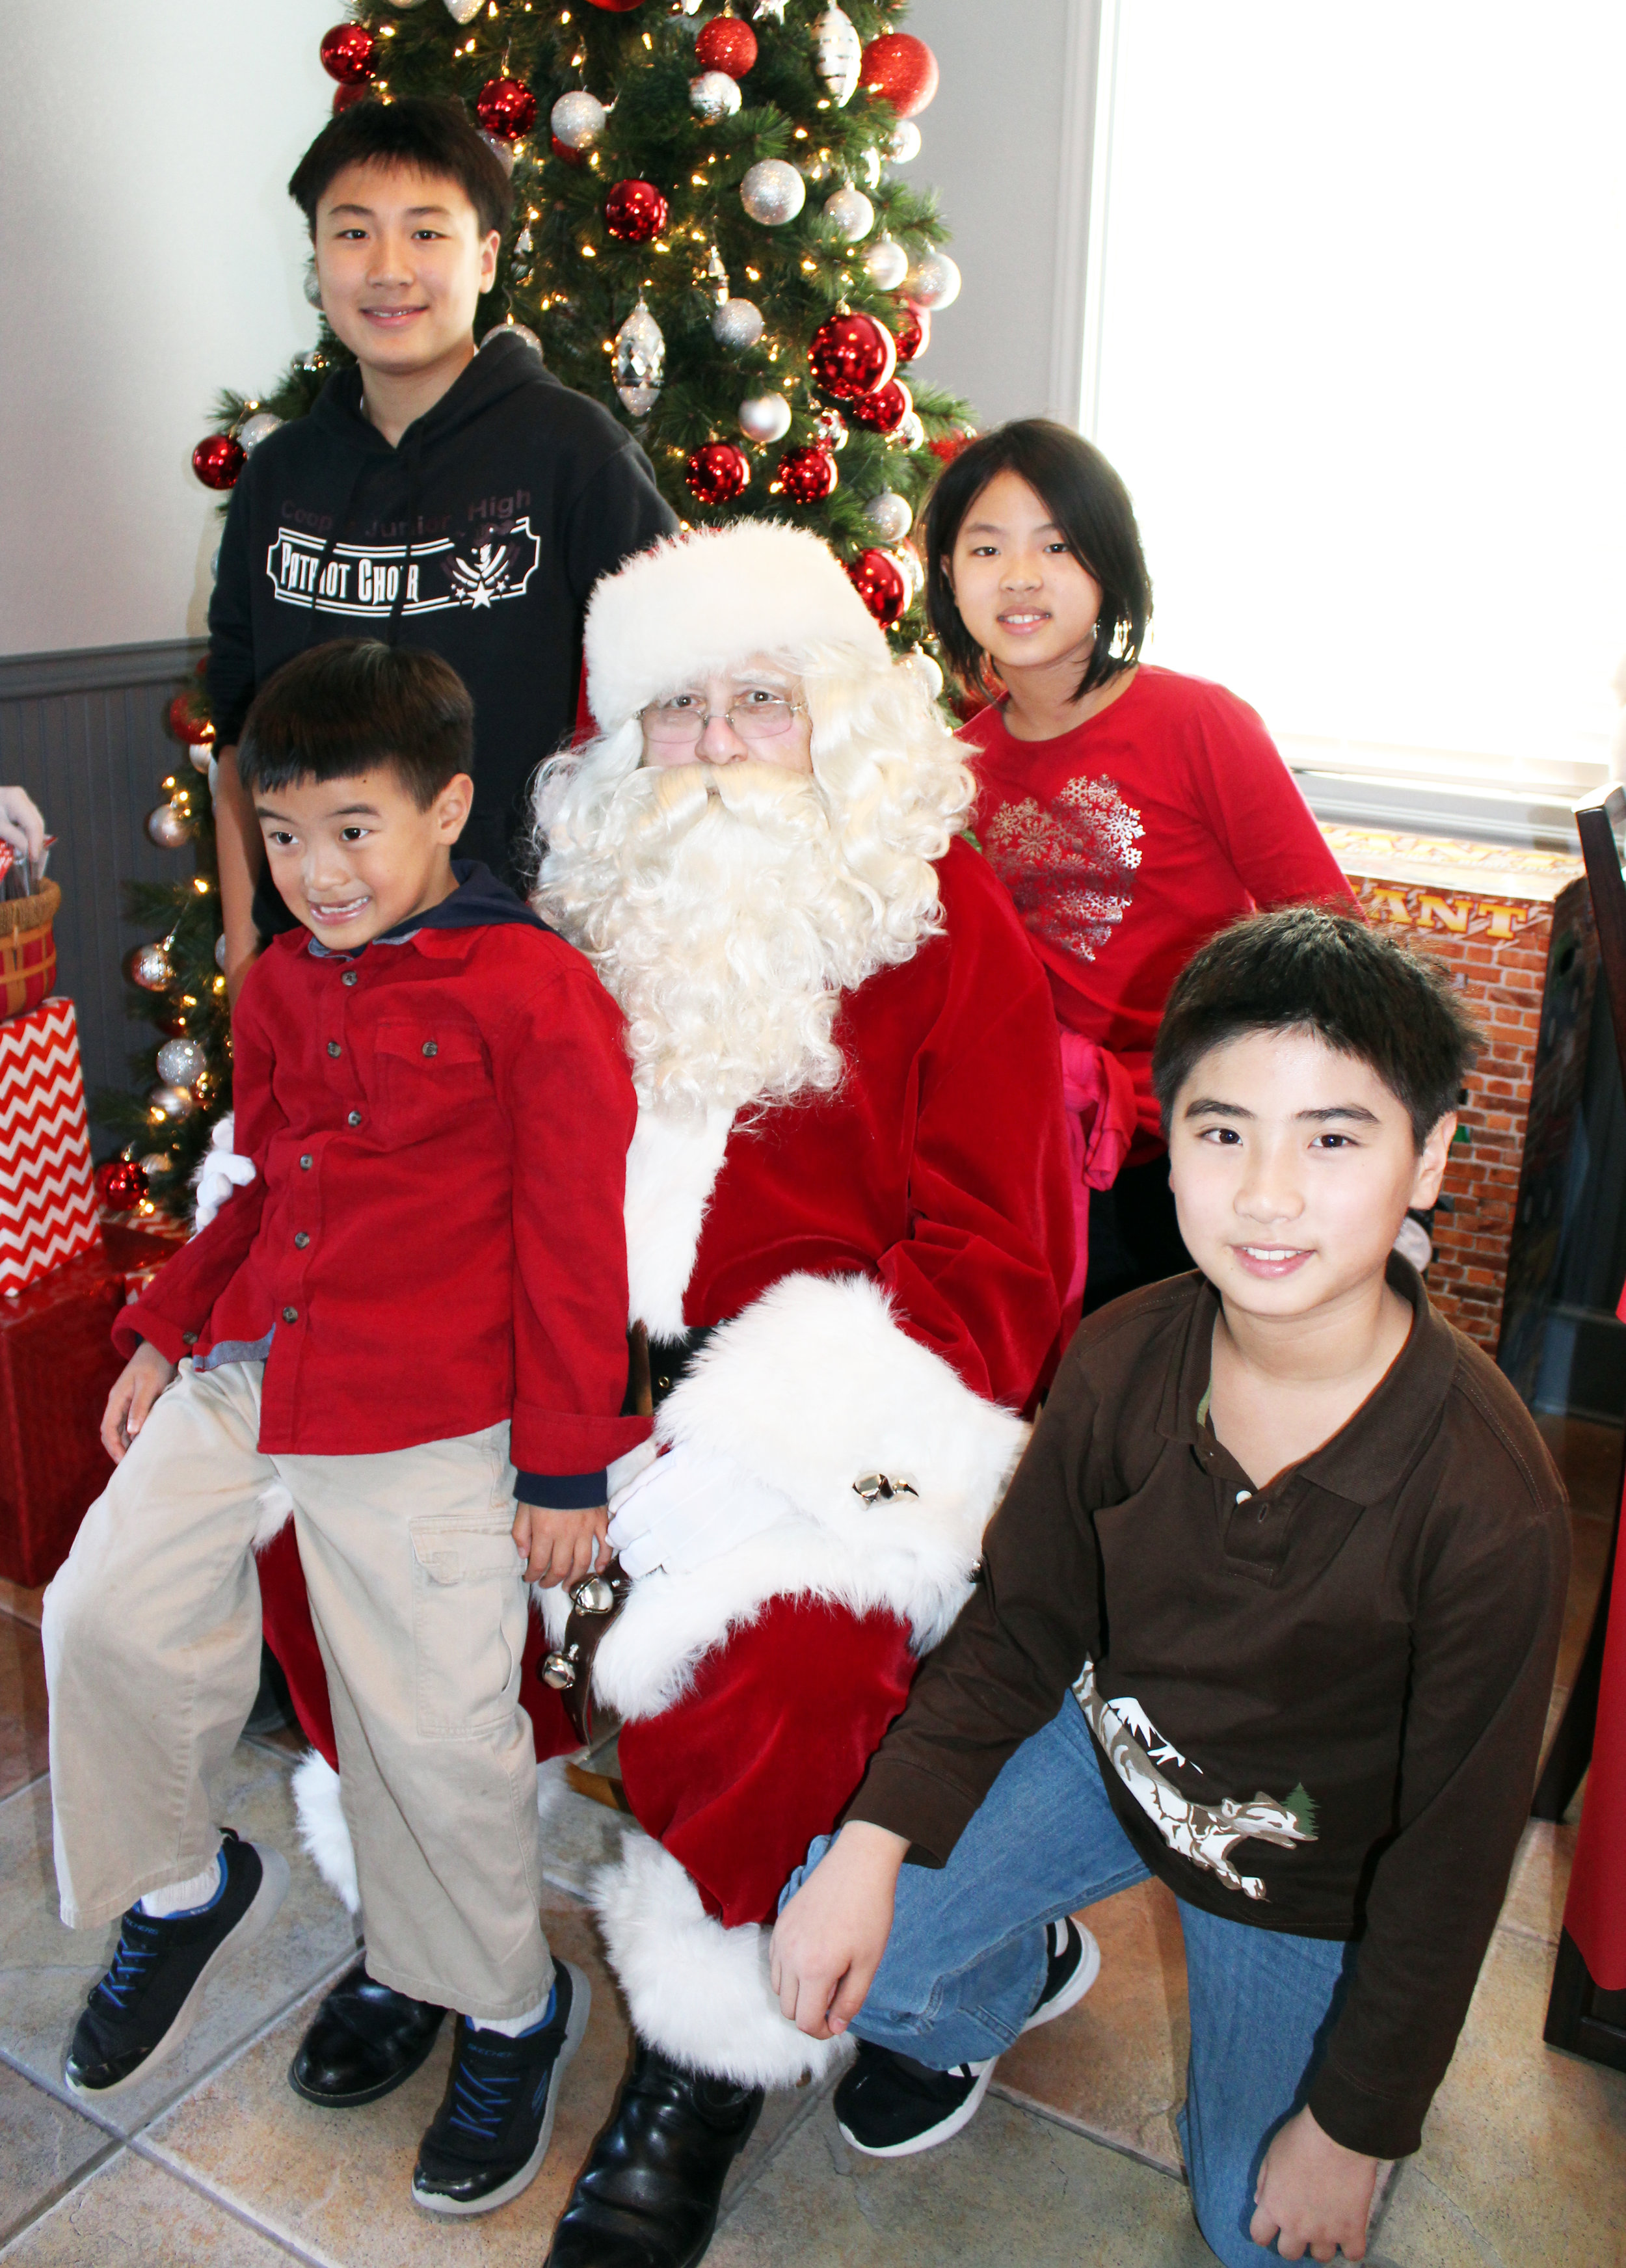 The Wang children (Front row, from left) Cody and Sevy, (back row, from left) Leon and Suri.